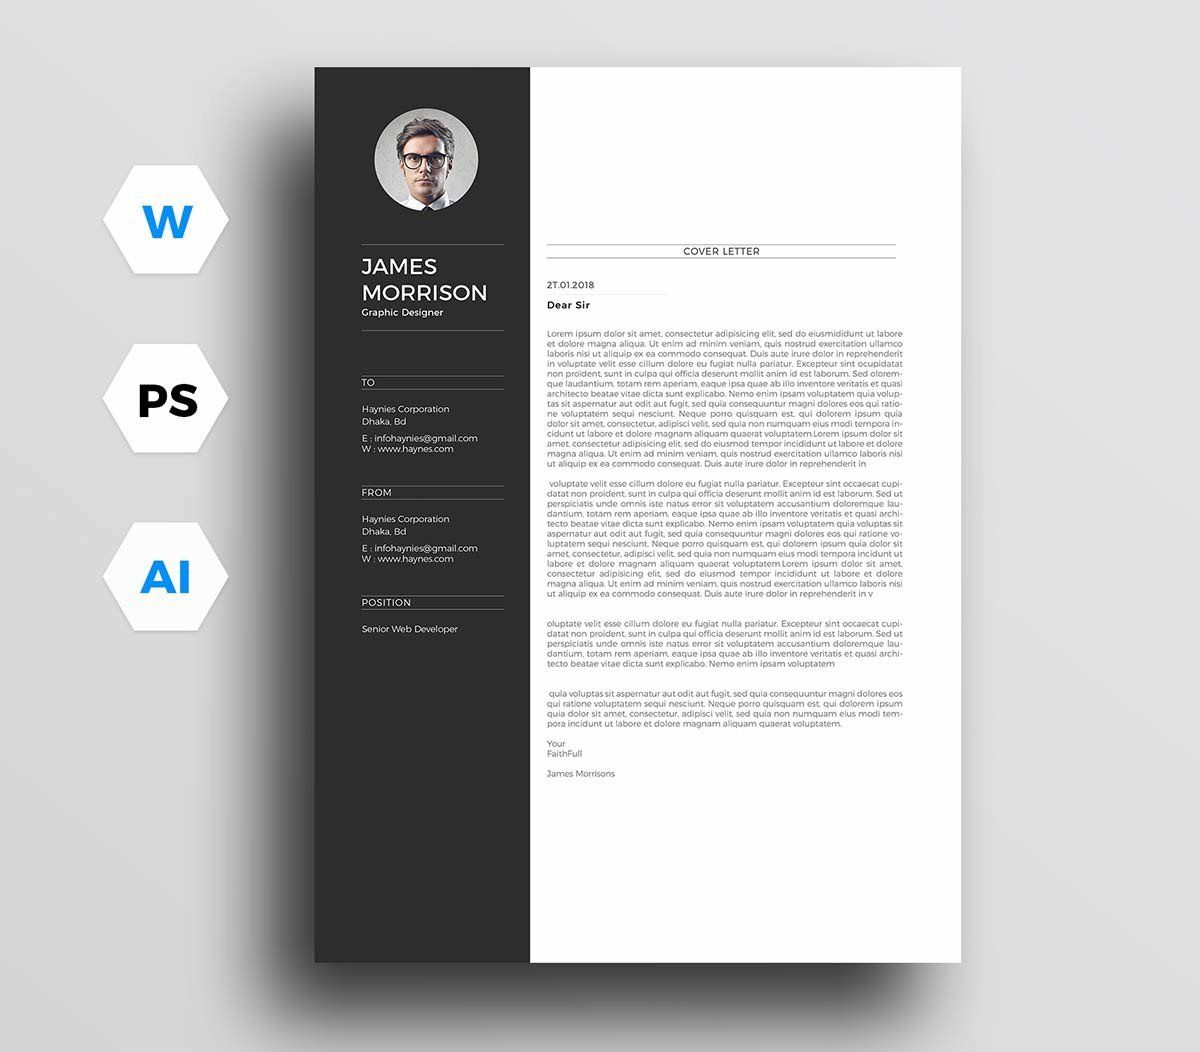 004 Awesome Resume Cover Letter Template Free Highest Clarity  Simple Online MicrosoftFull